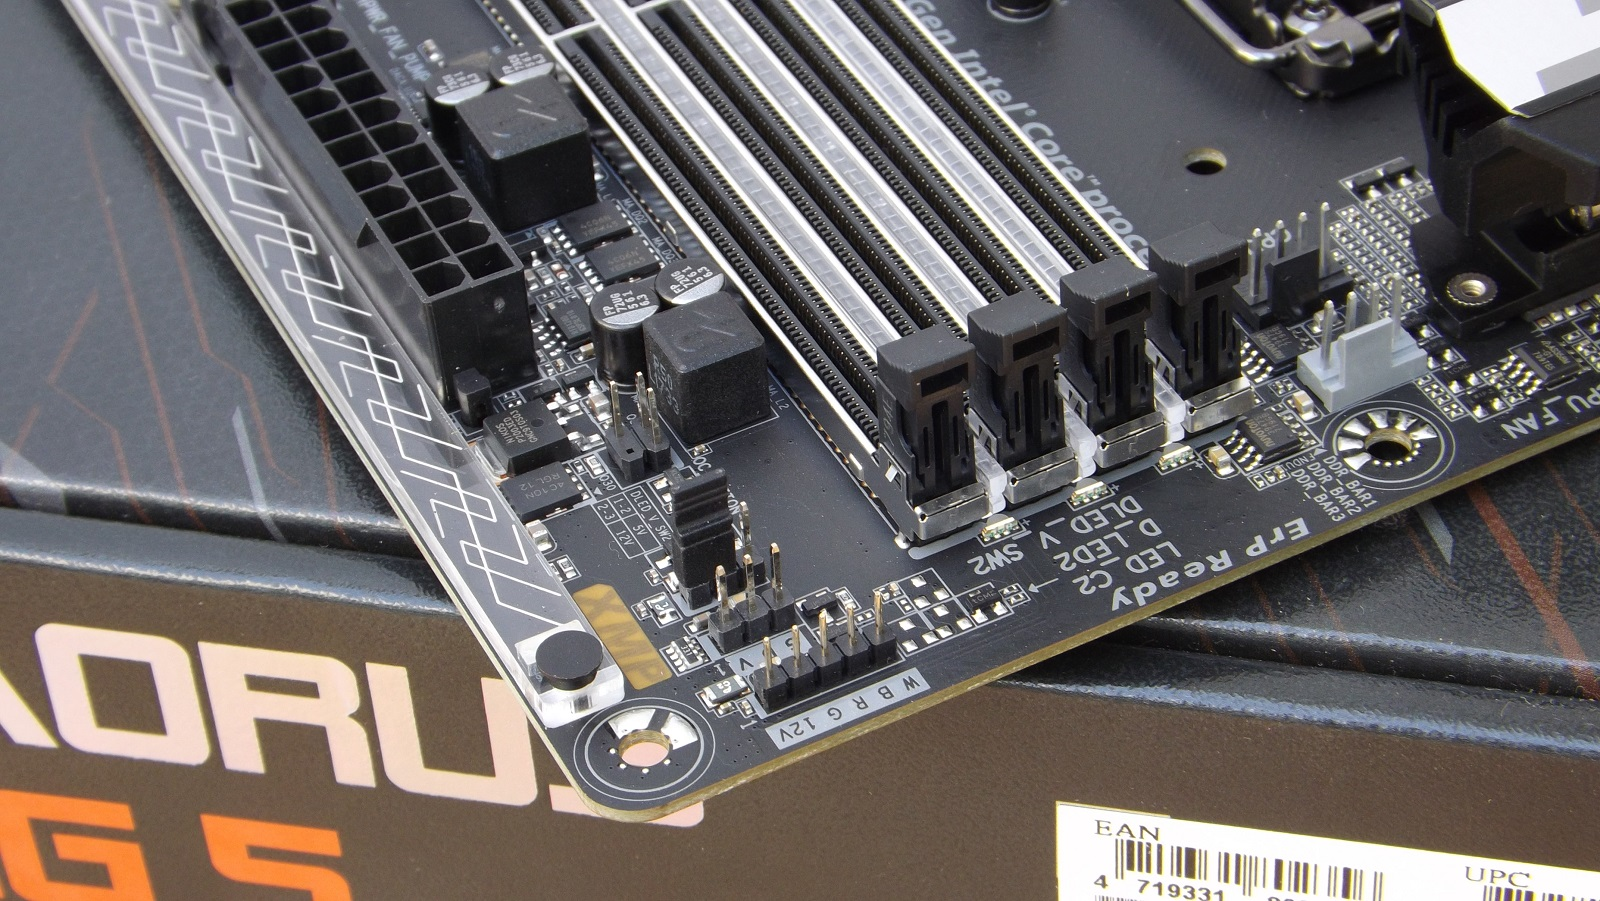 Gigabyte Aorus Z370 Gaming 5 Motherboard Review - Page 2 of